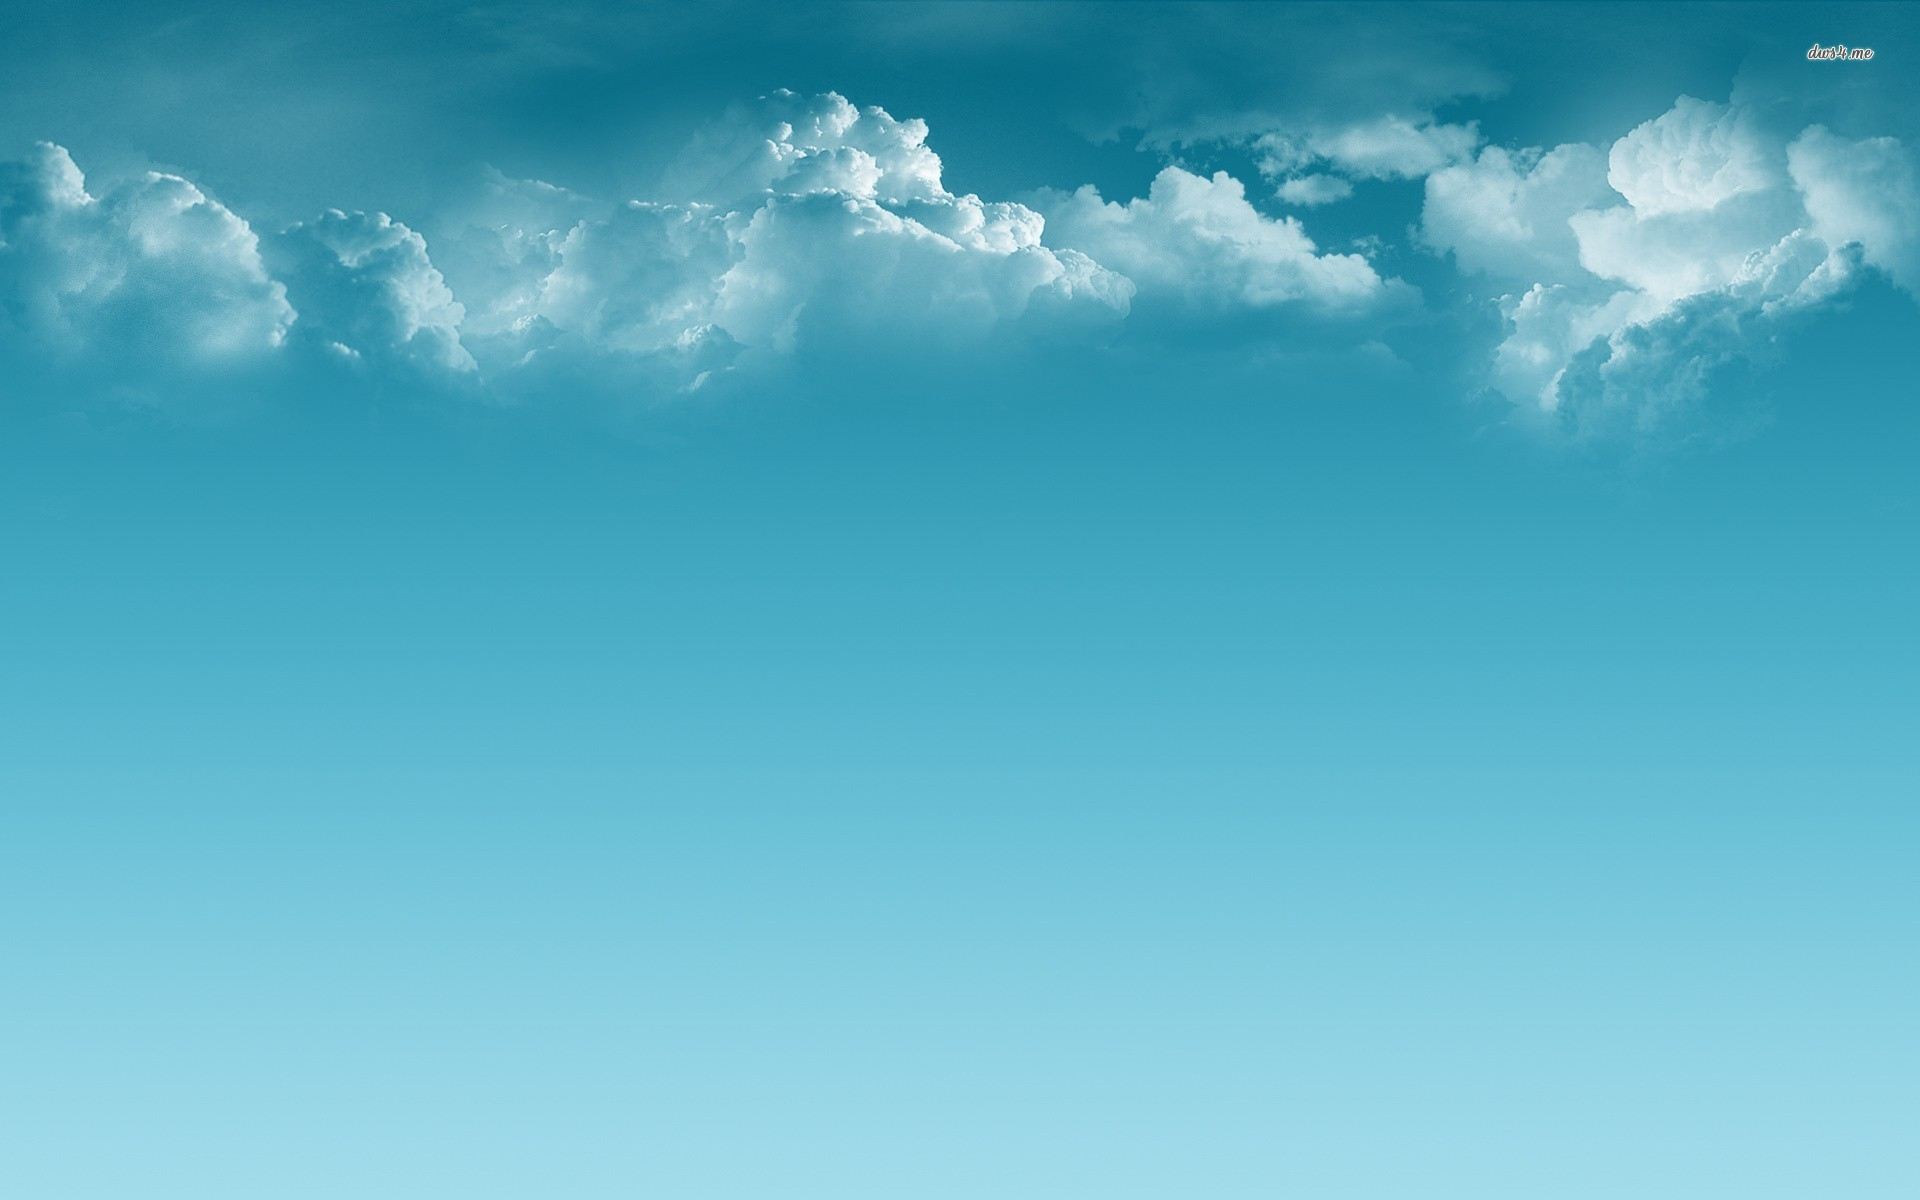 ... Clouds and blue sky wallpaper 1920x1200 ...